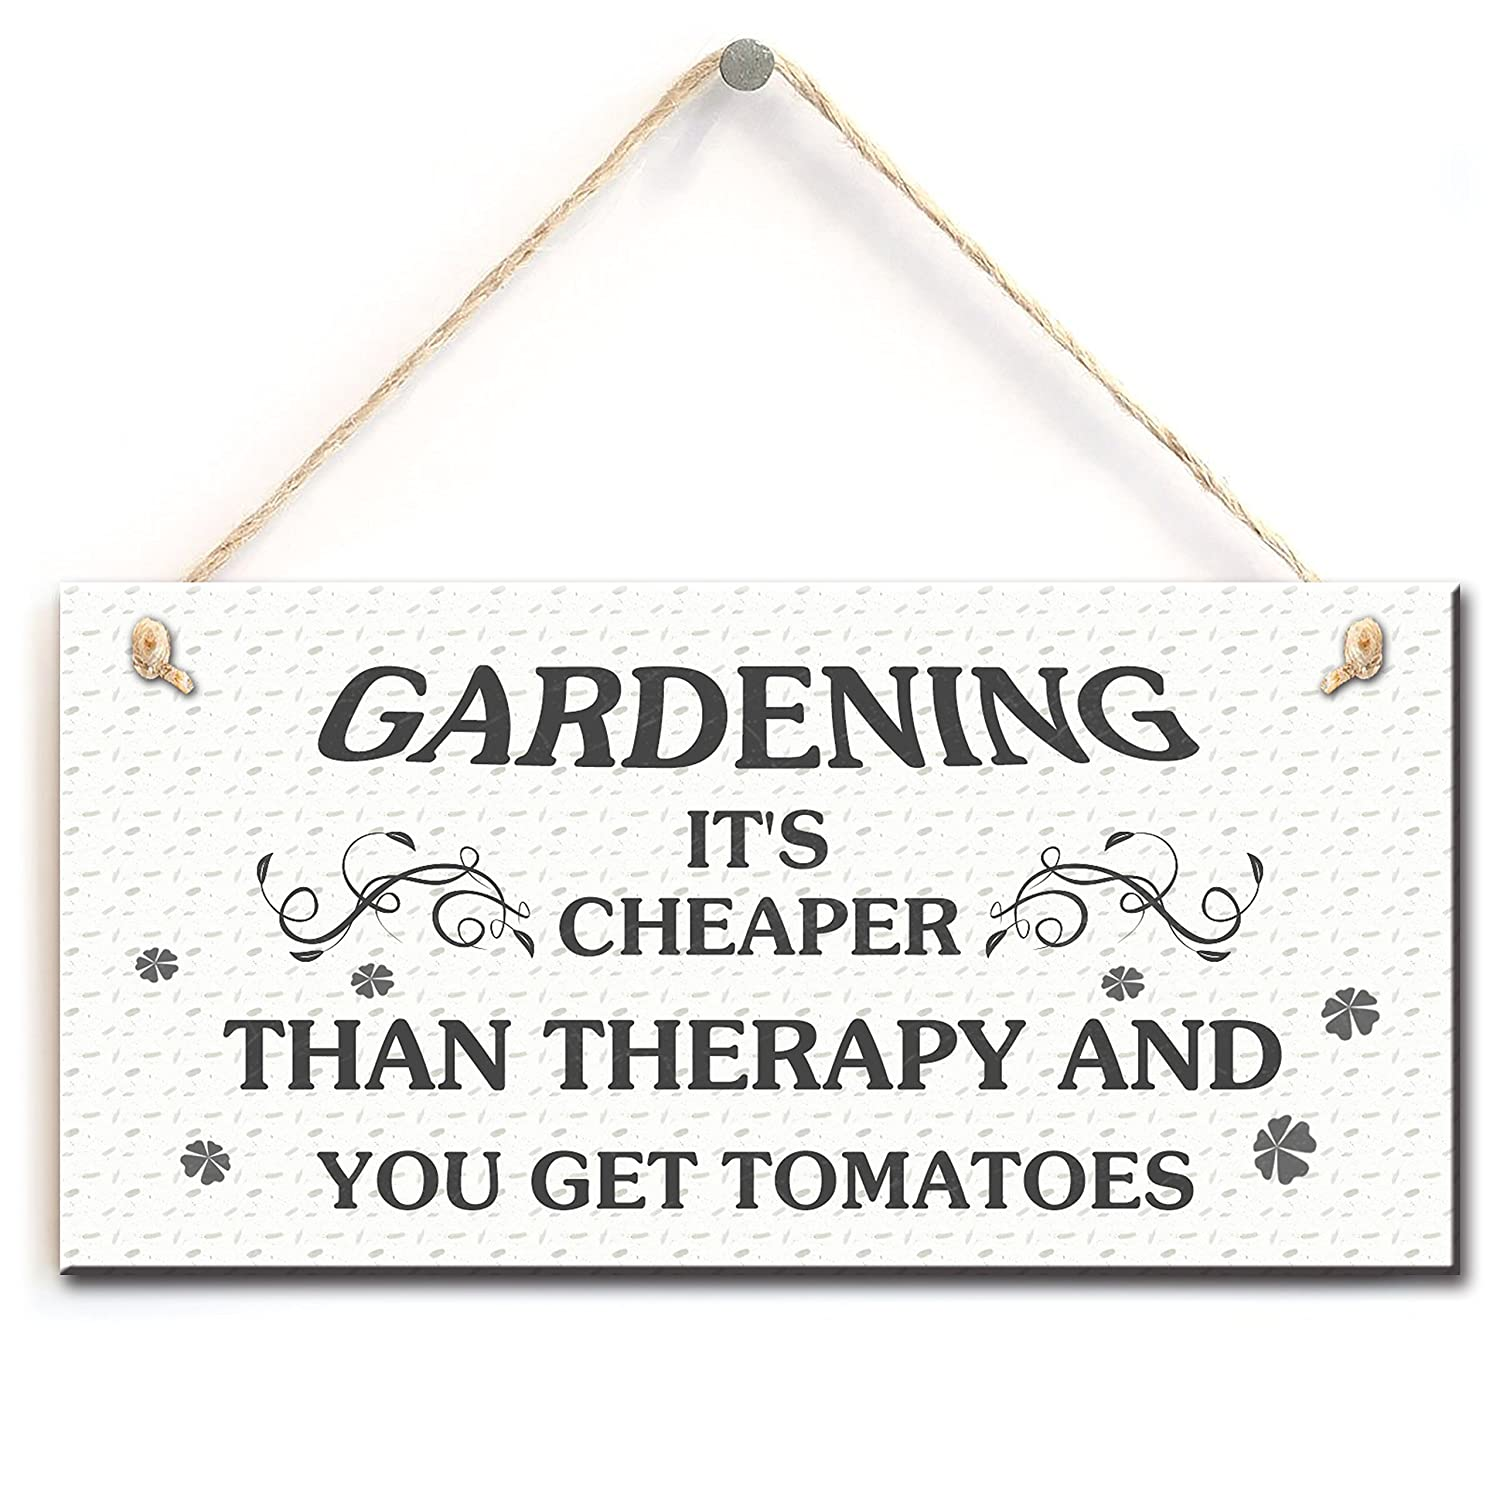 "Funny Garden Sign- Gardening It's Cheaper Than Therapy and You Get Tomatos, Unique Gift for Gardeners(5"" X 10"")"